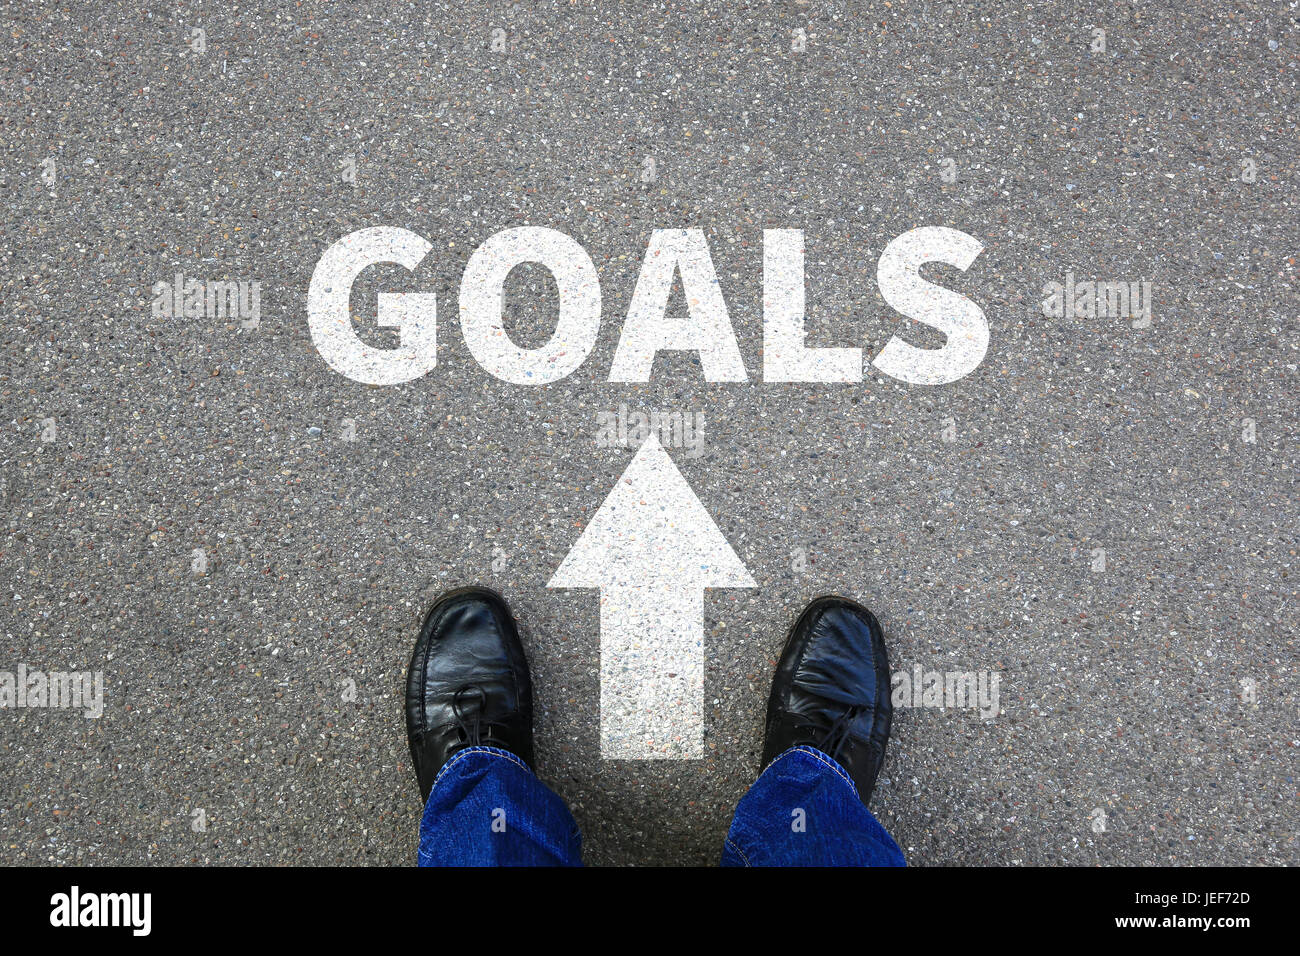 Goal goals setting success new aspirations strategy future businessman business concept - Stock Image